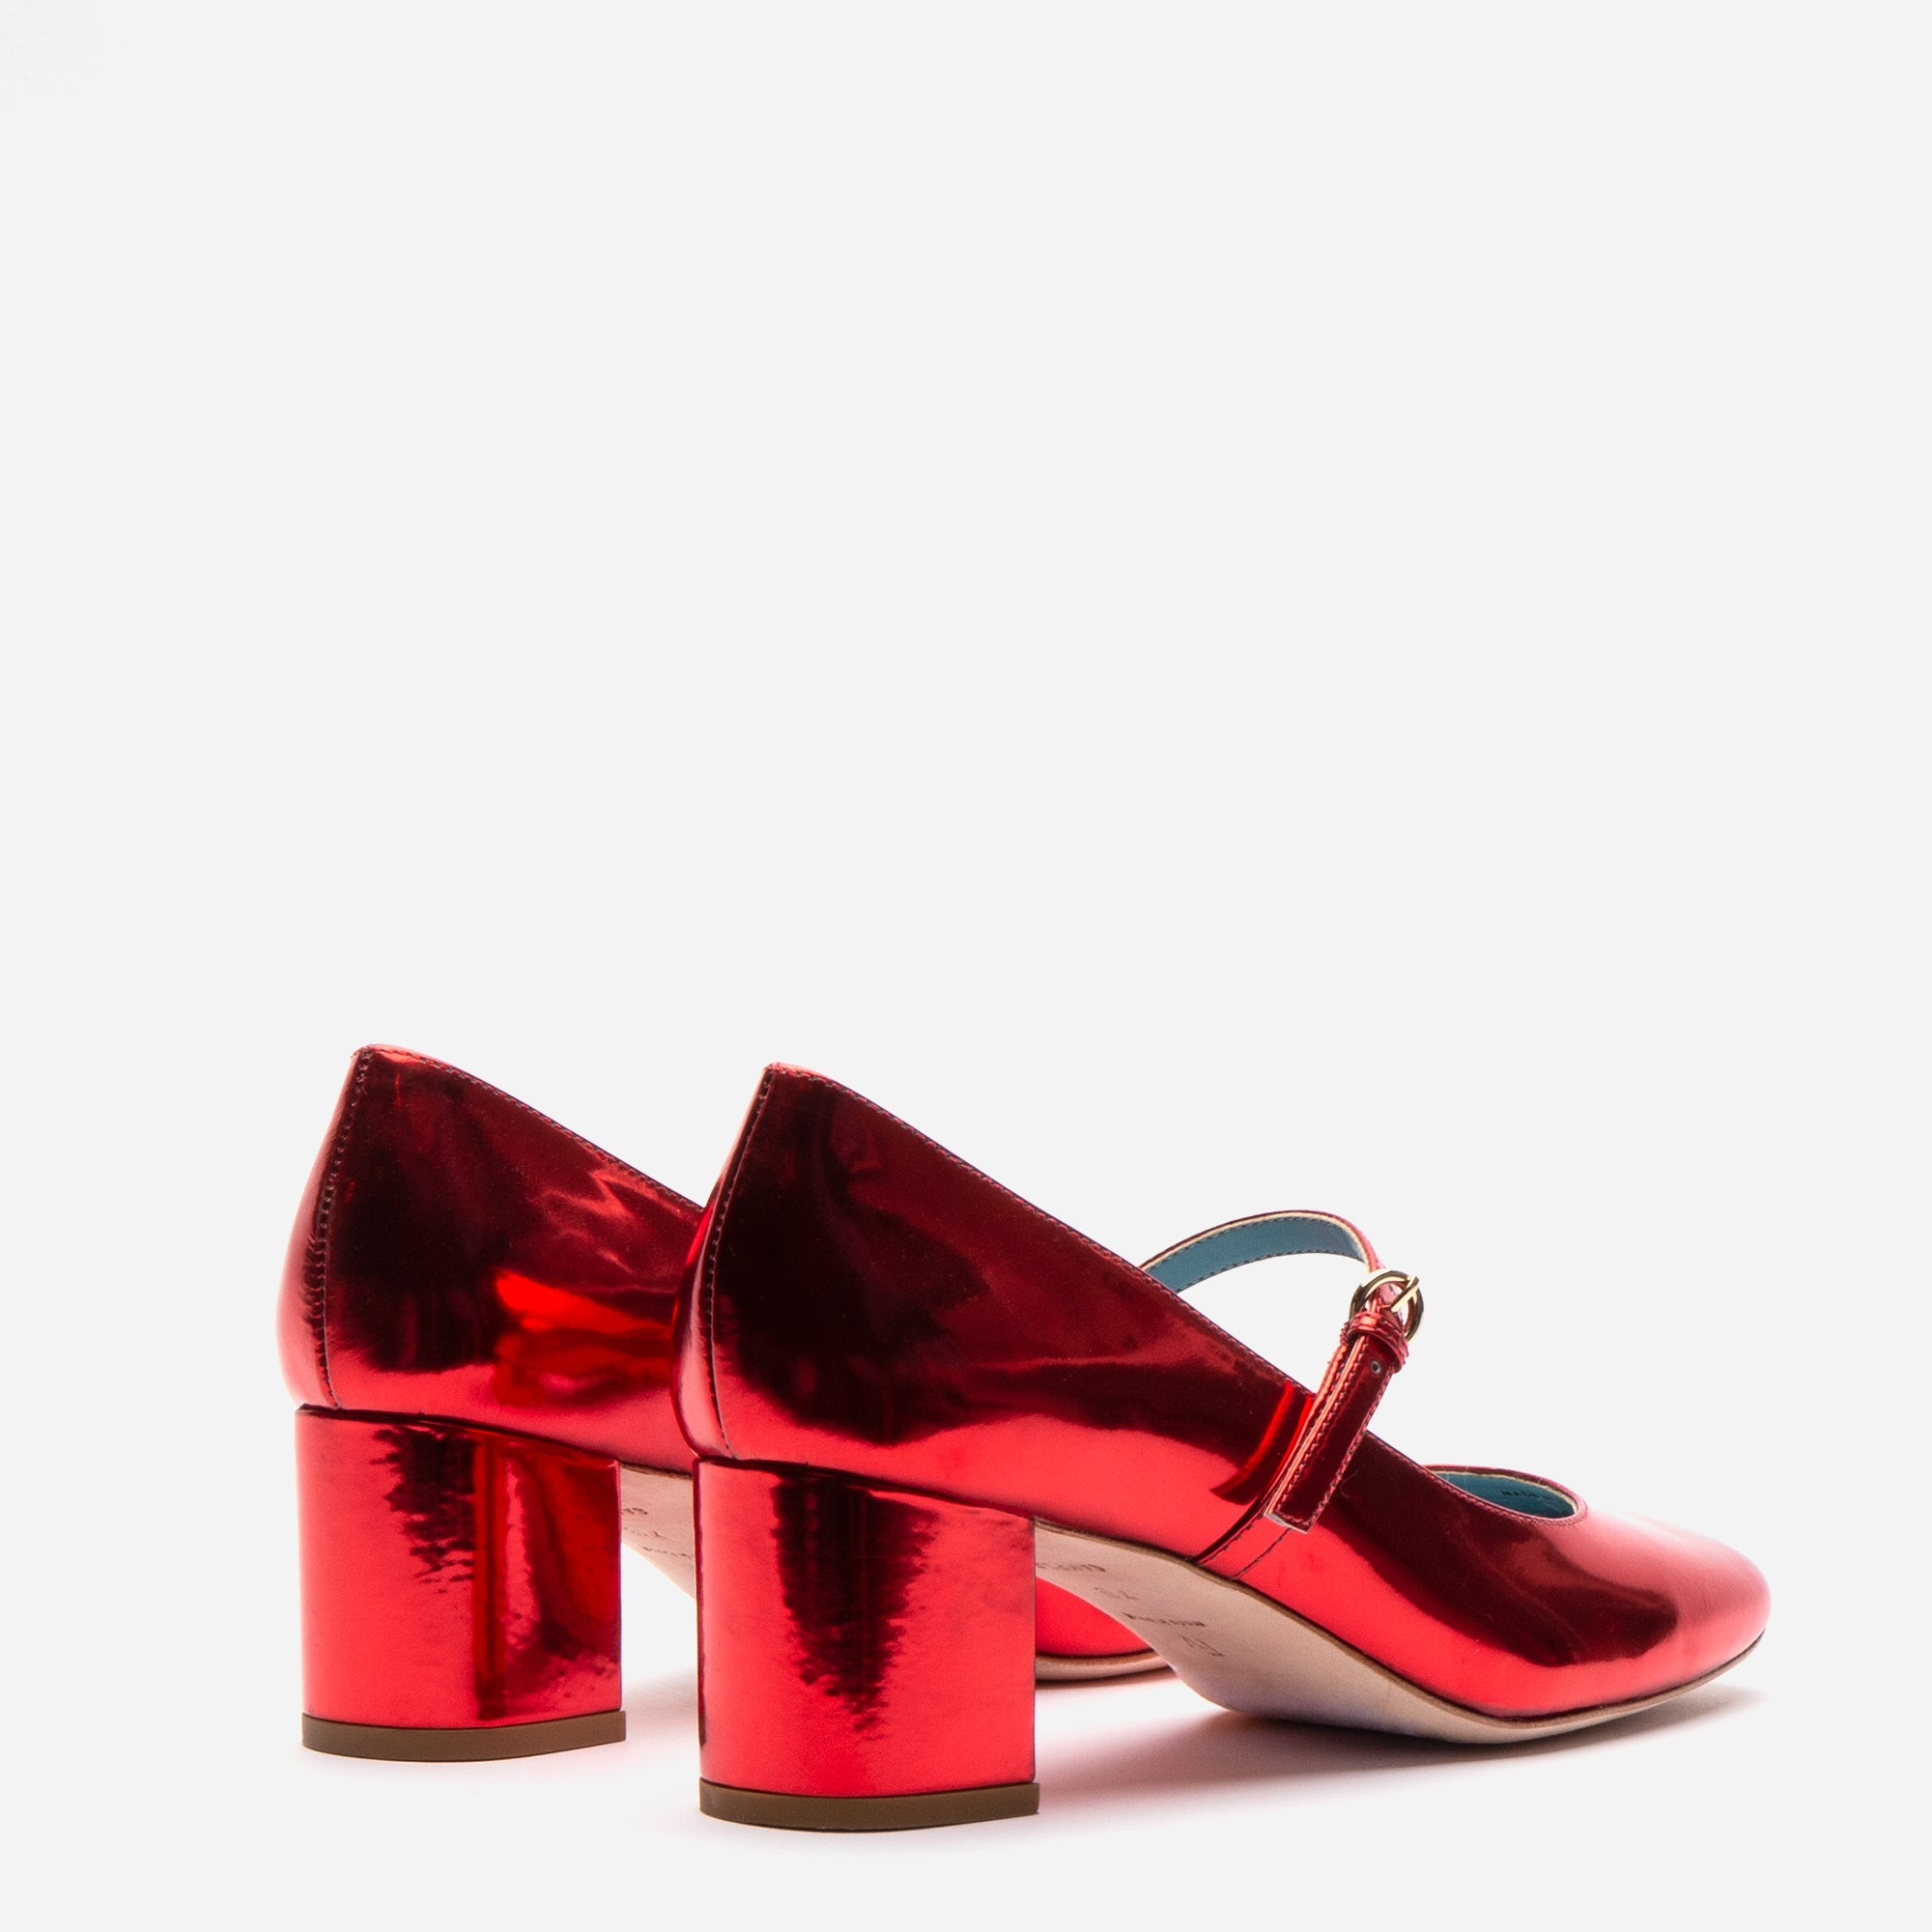 Kat Mary Jane Heels Specchio Red